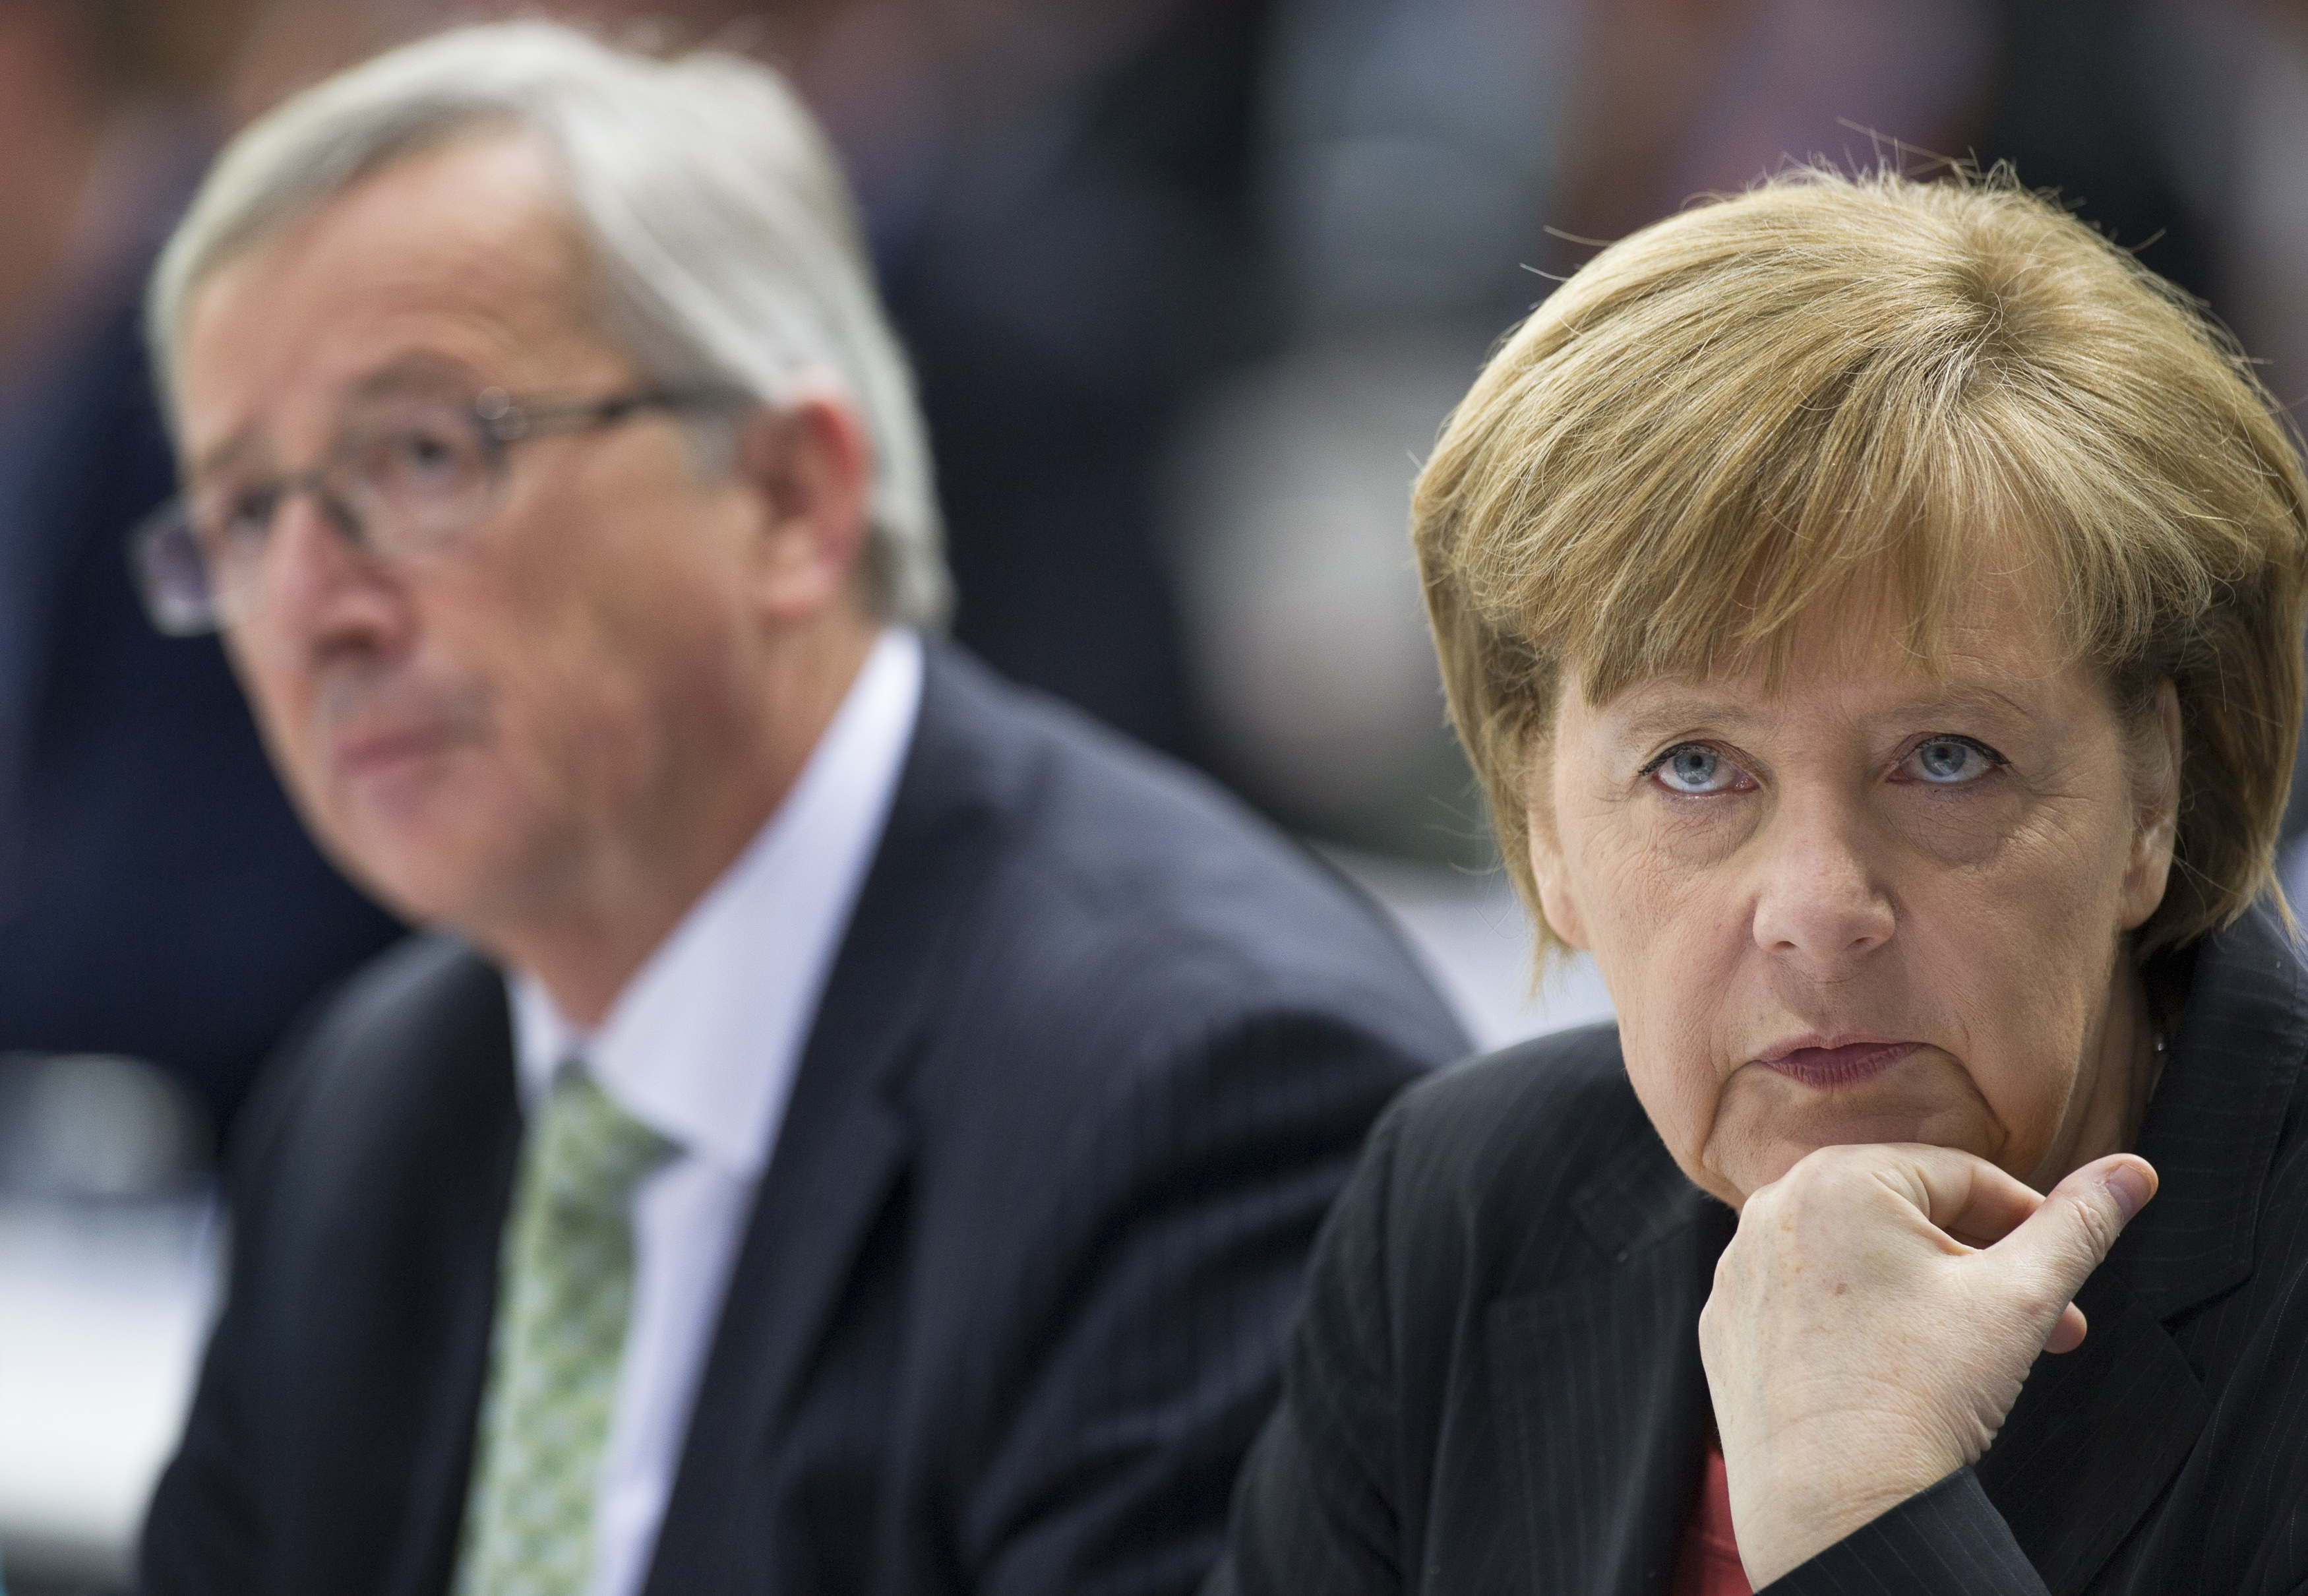 Europe fights back on new US anti-Russian sanctions